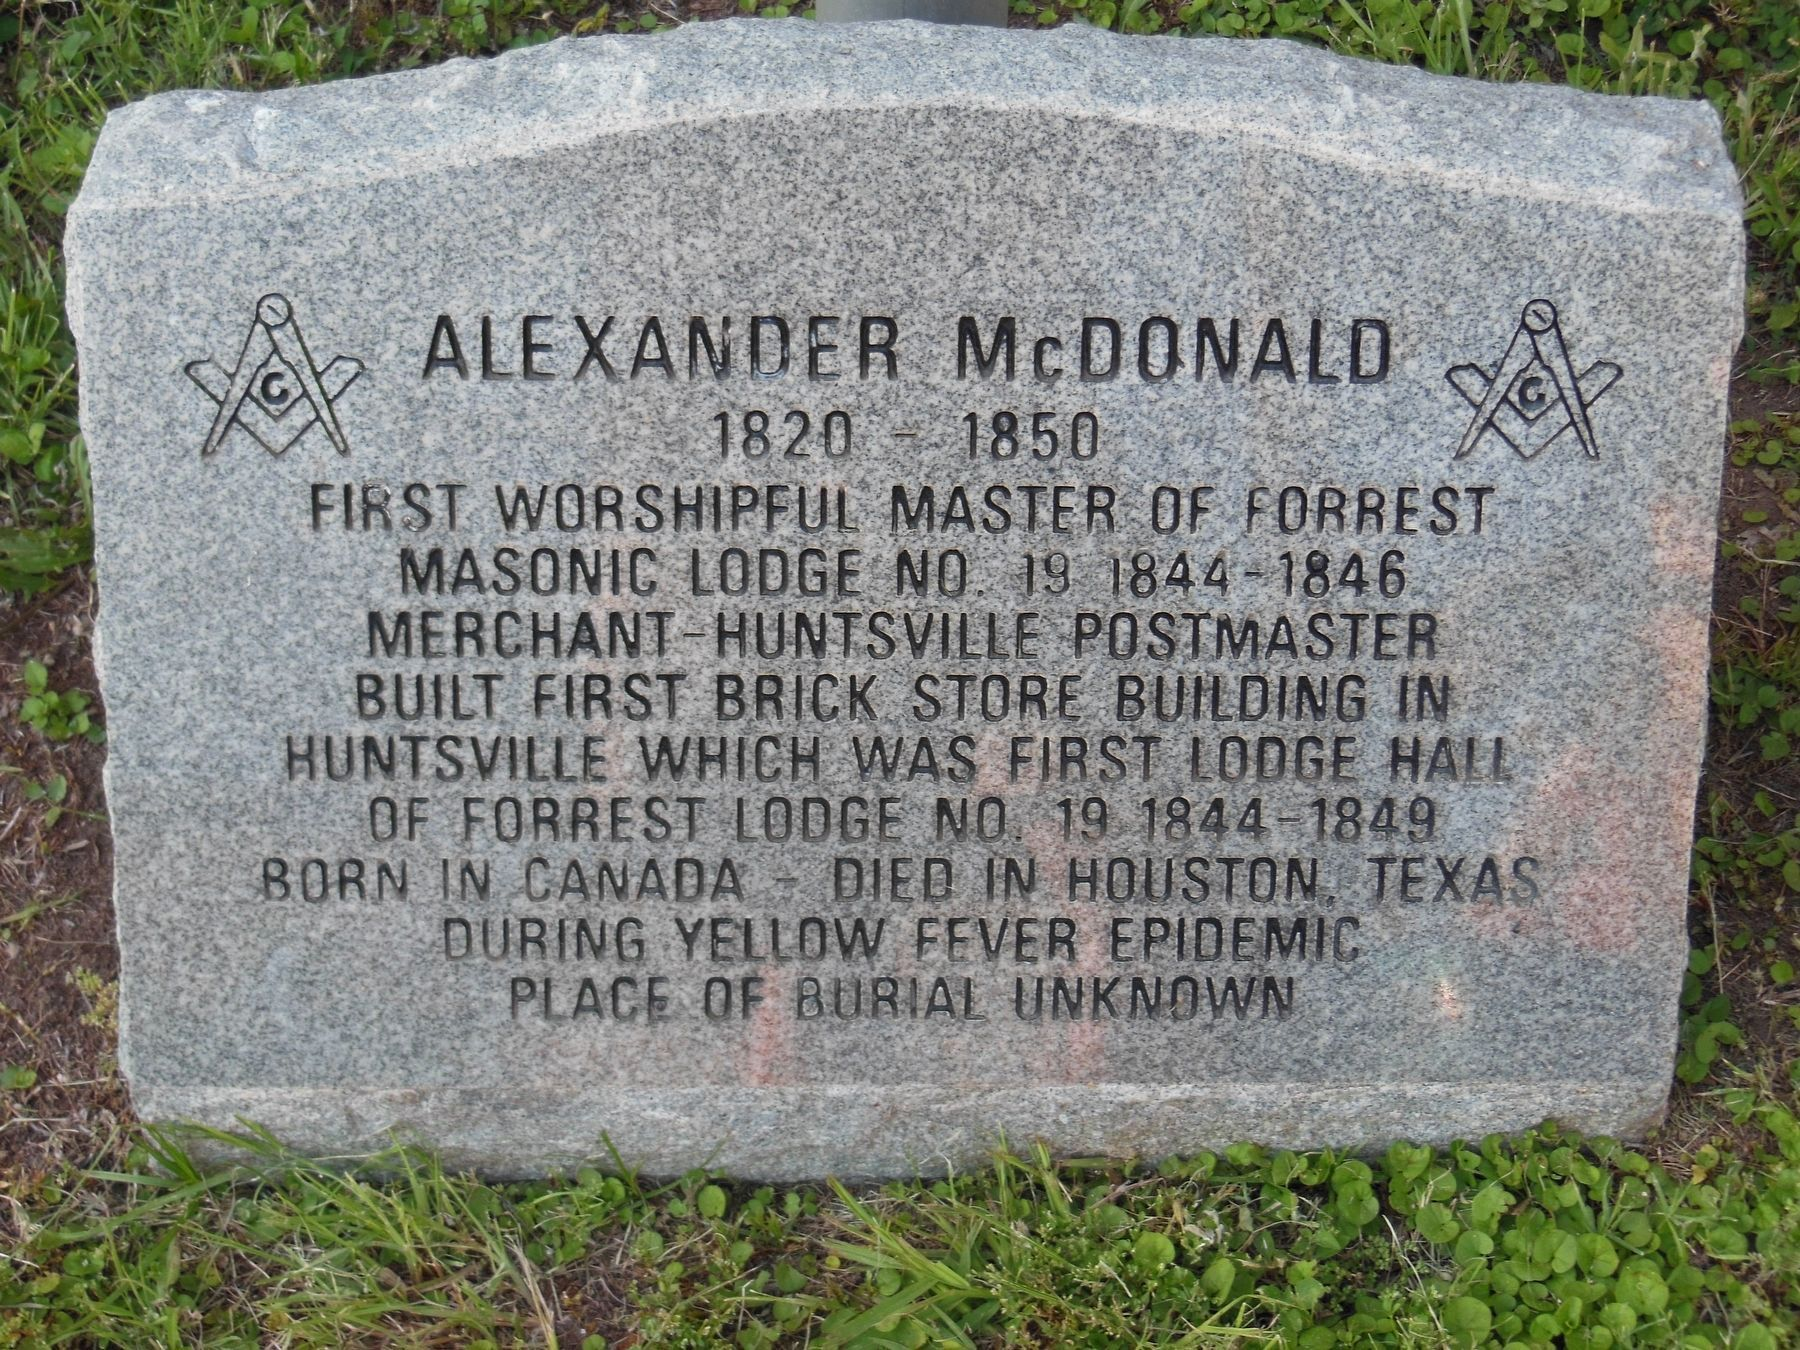 Alexander McDonald Memorial (<i>located at current Forrest Lodge building </i>) image. Click for full size.